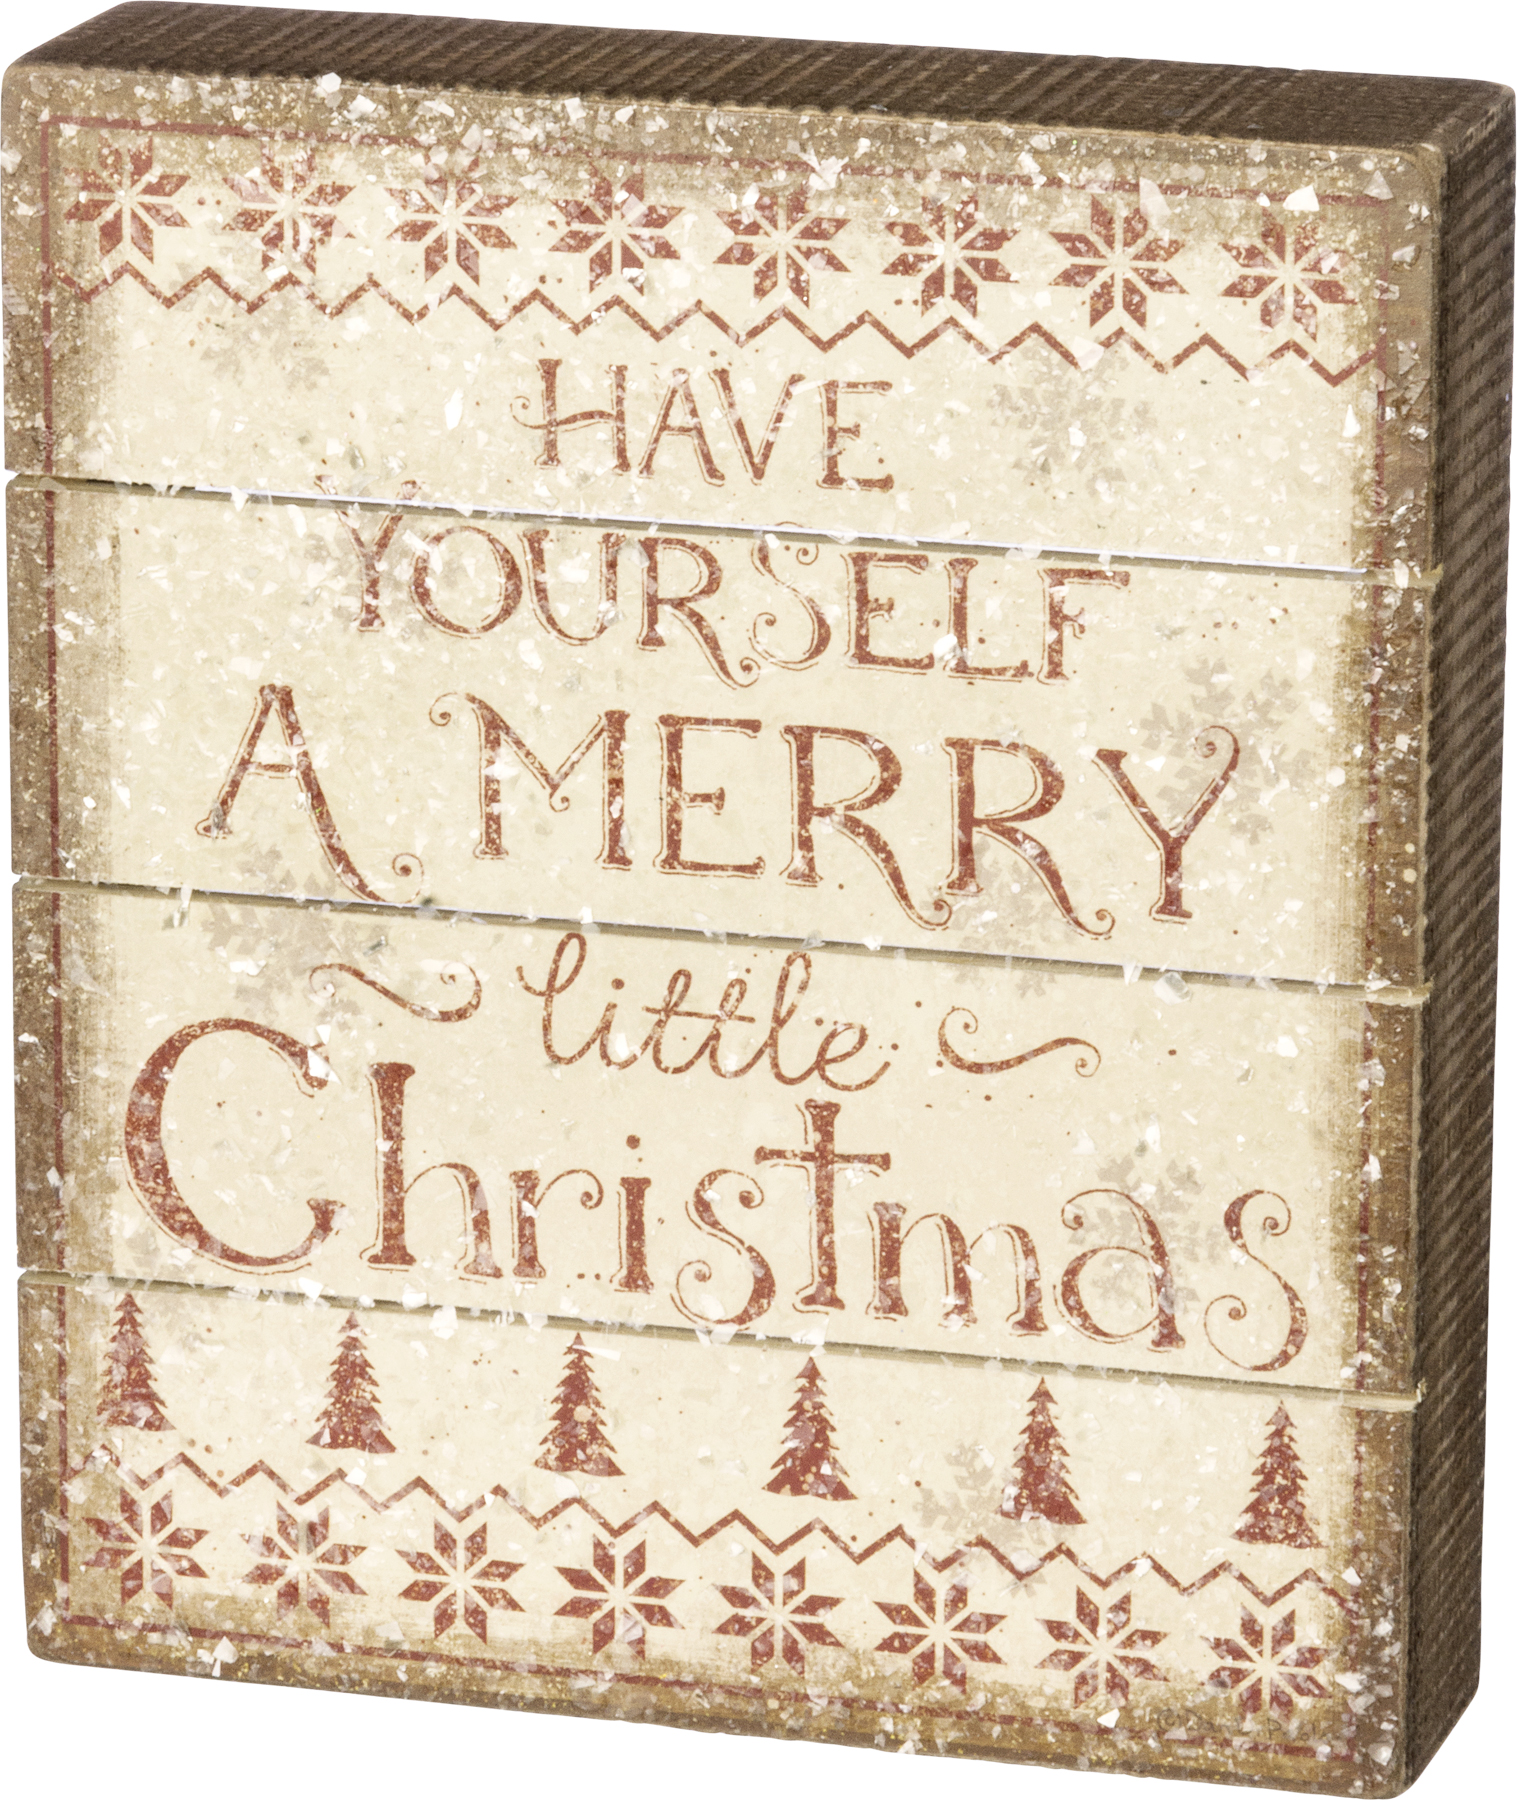 Have Yourself A Merry Little Christmas Sign.Have Yourself A Merry Little Christmas Rustic Decorative Wooden Box Sign 7x8 From Primitives By Kathy